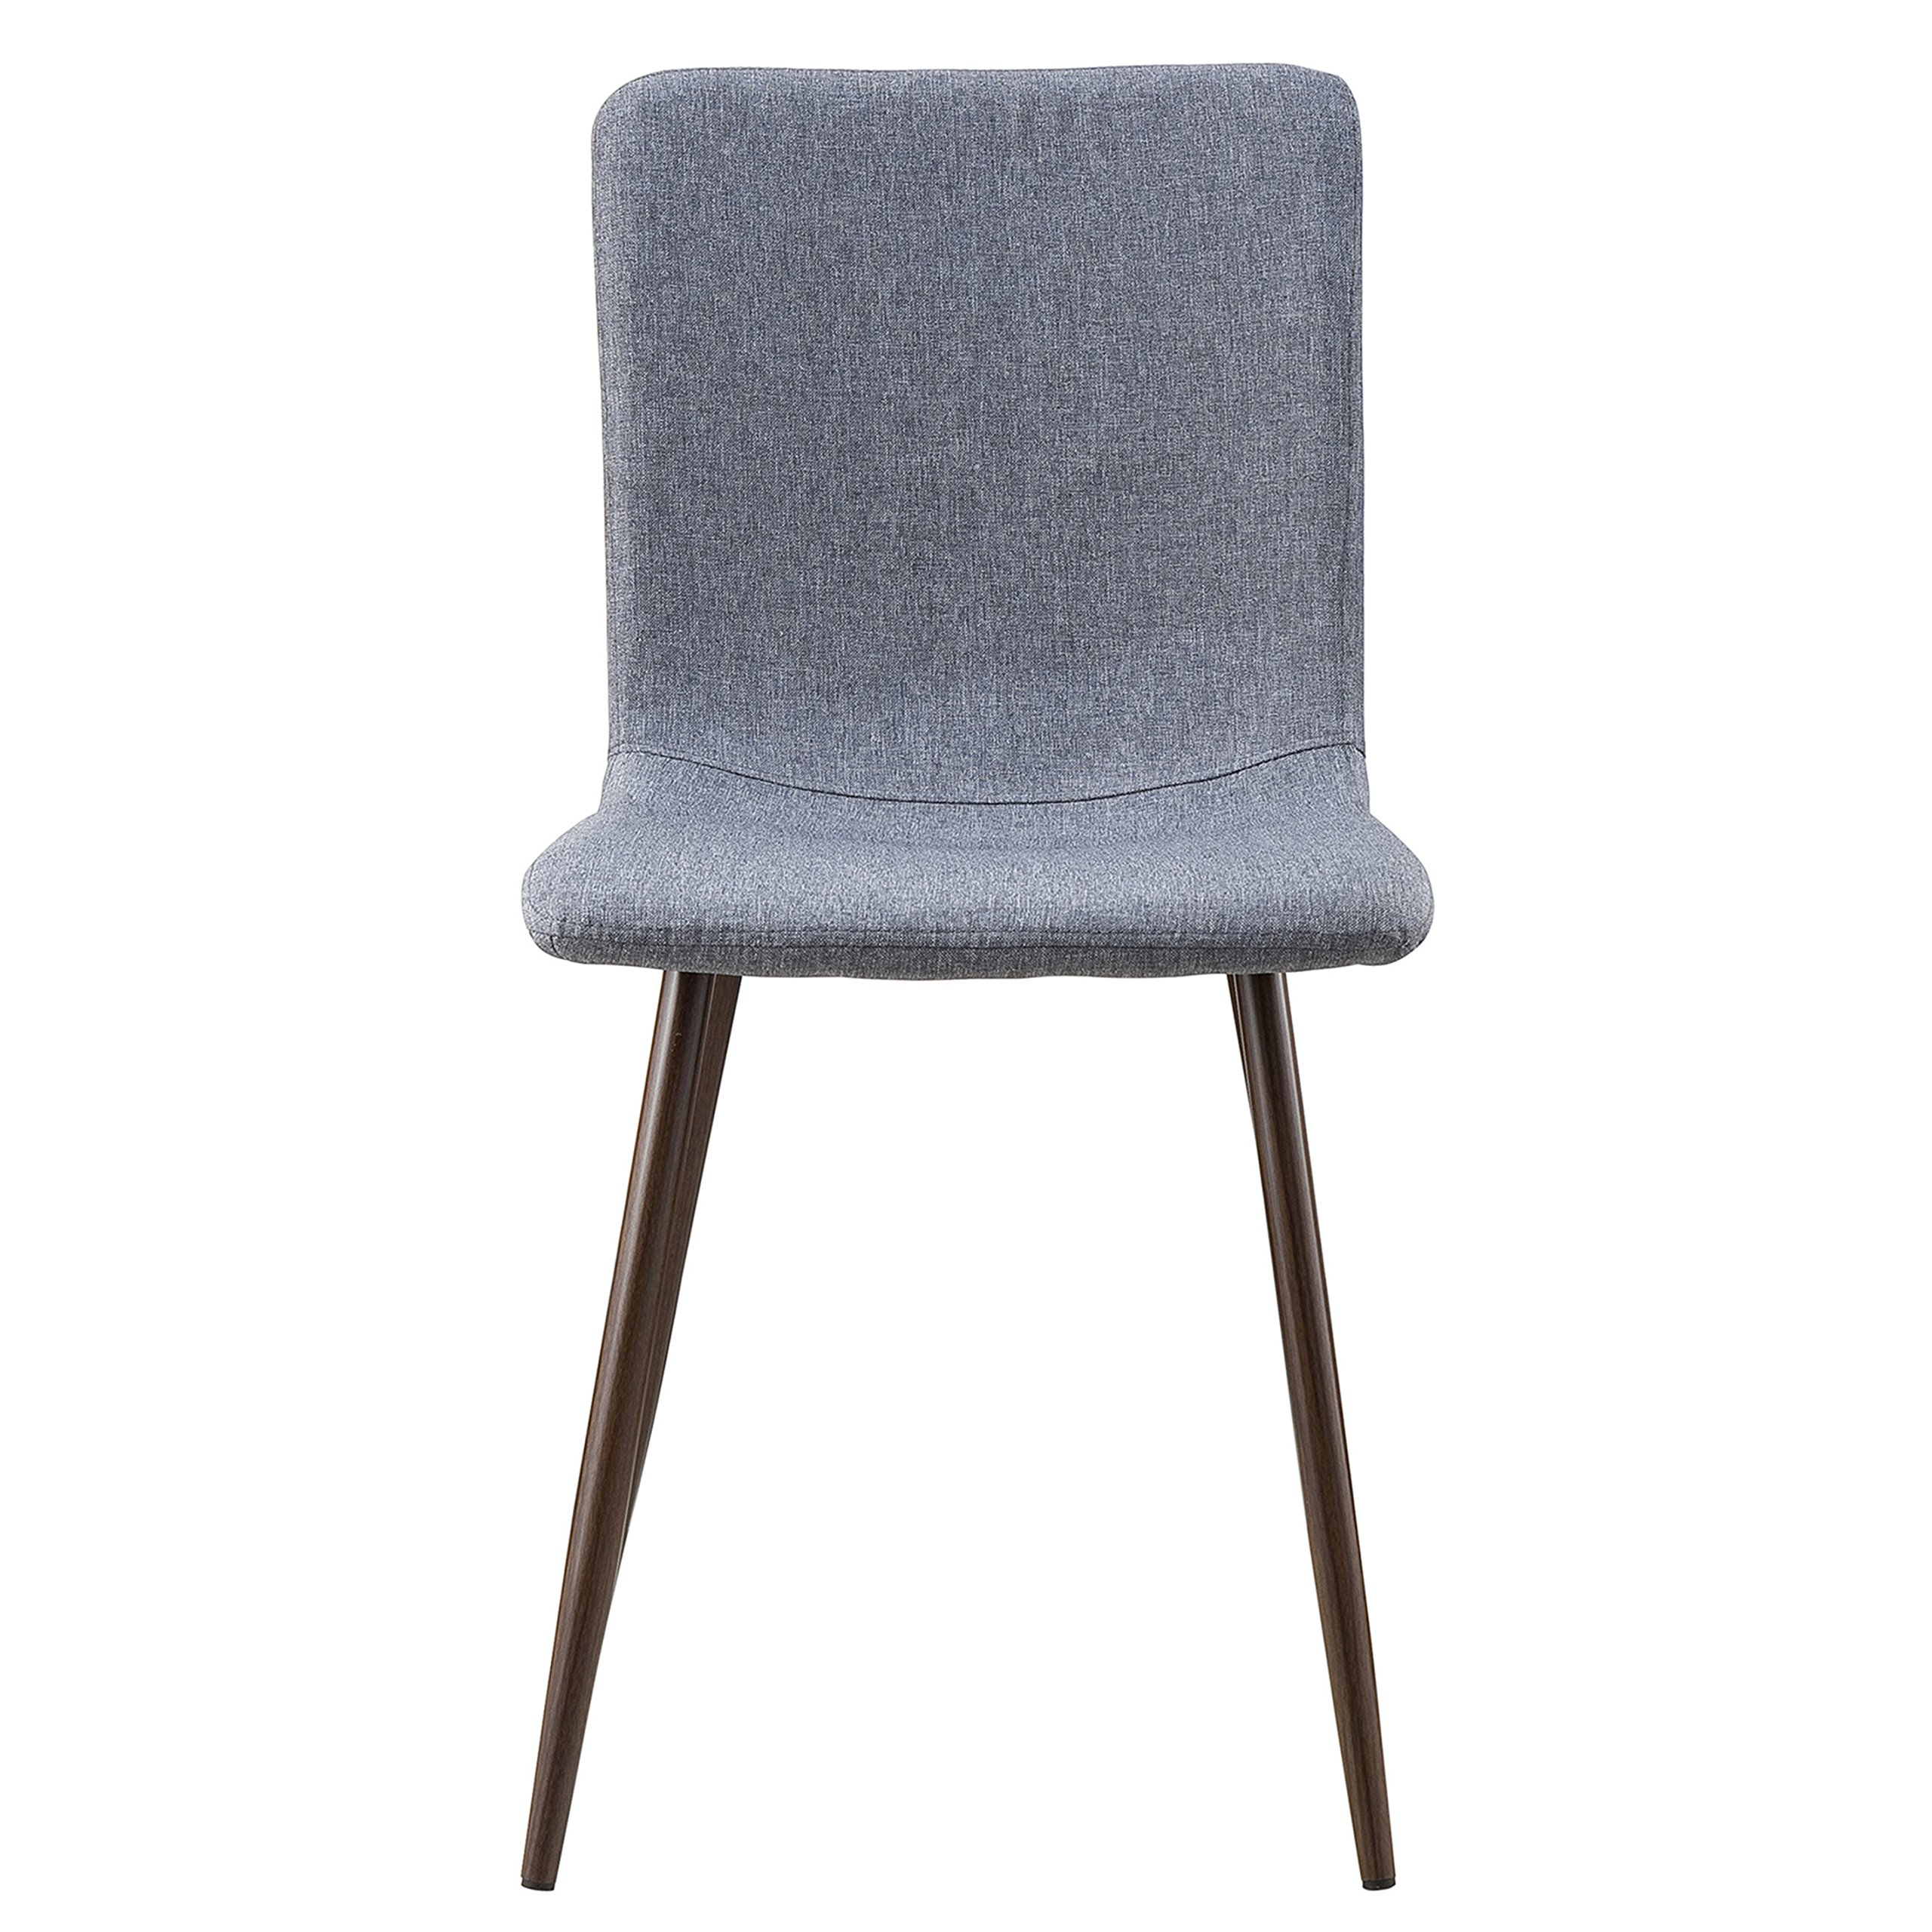 POLY & BARK EM-287-GRY-X4-A Wadsworth Dining Chair with Walnut Legs, Set of 4, by POLY & BARK (Image #3)